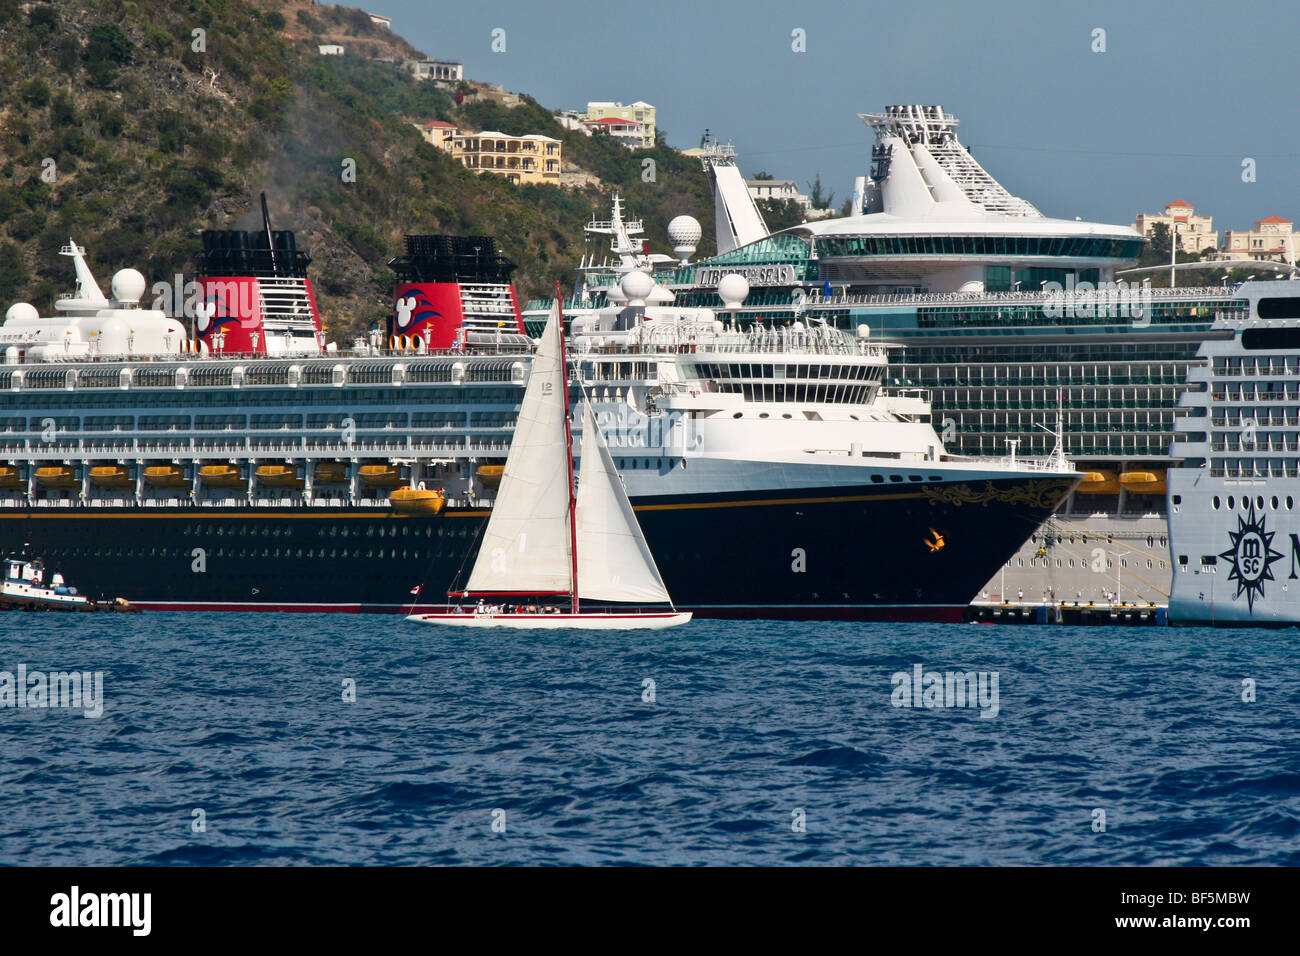 The Twelve Meter yacht CANADA sails past cruise ships in Great Bay, Philipsburg, Sint Maarten - Stock Image